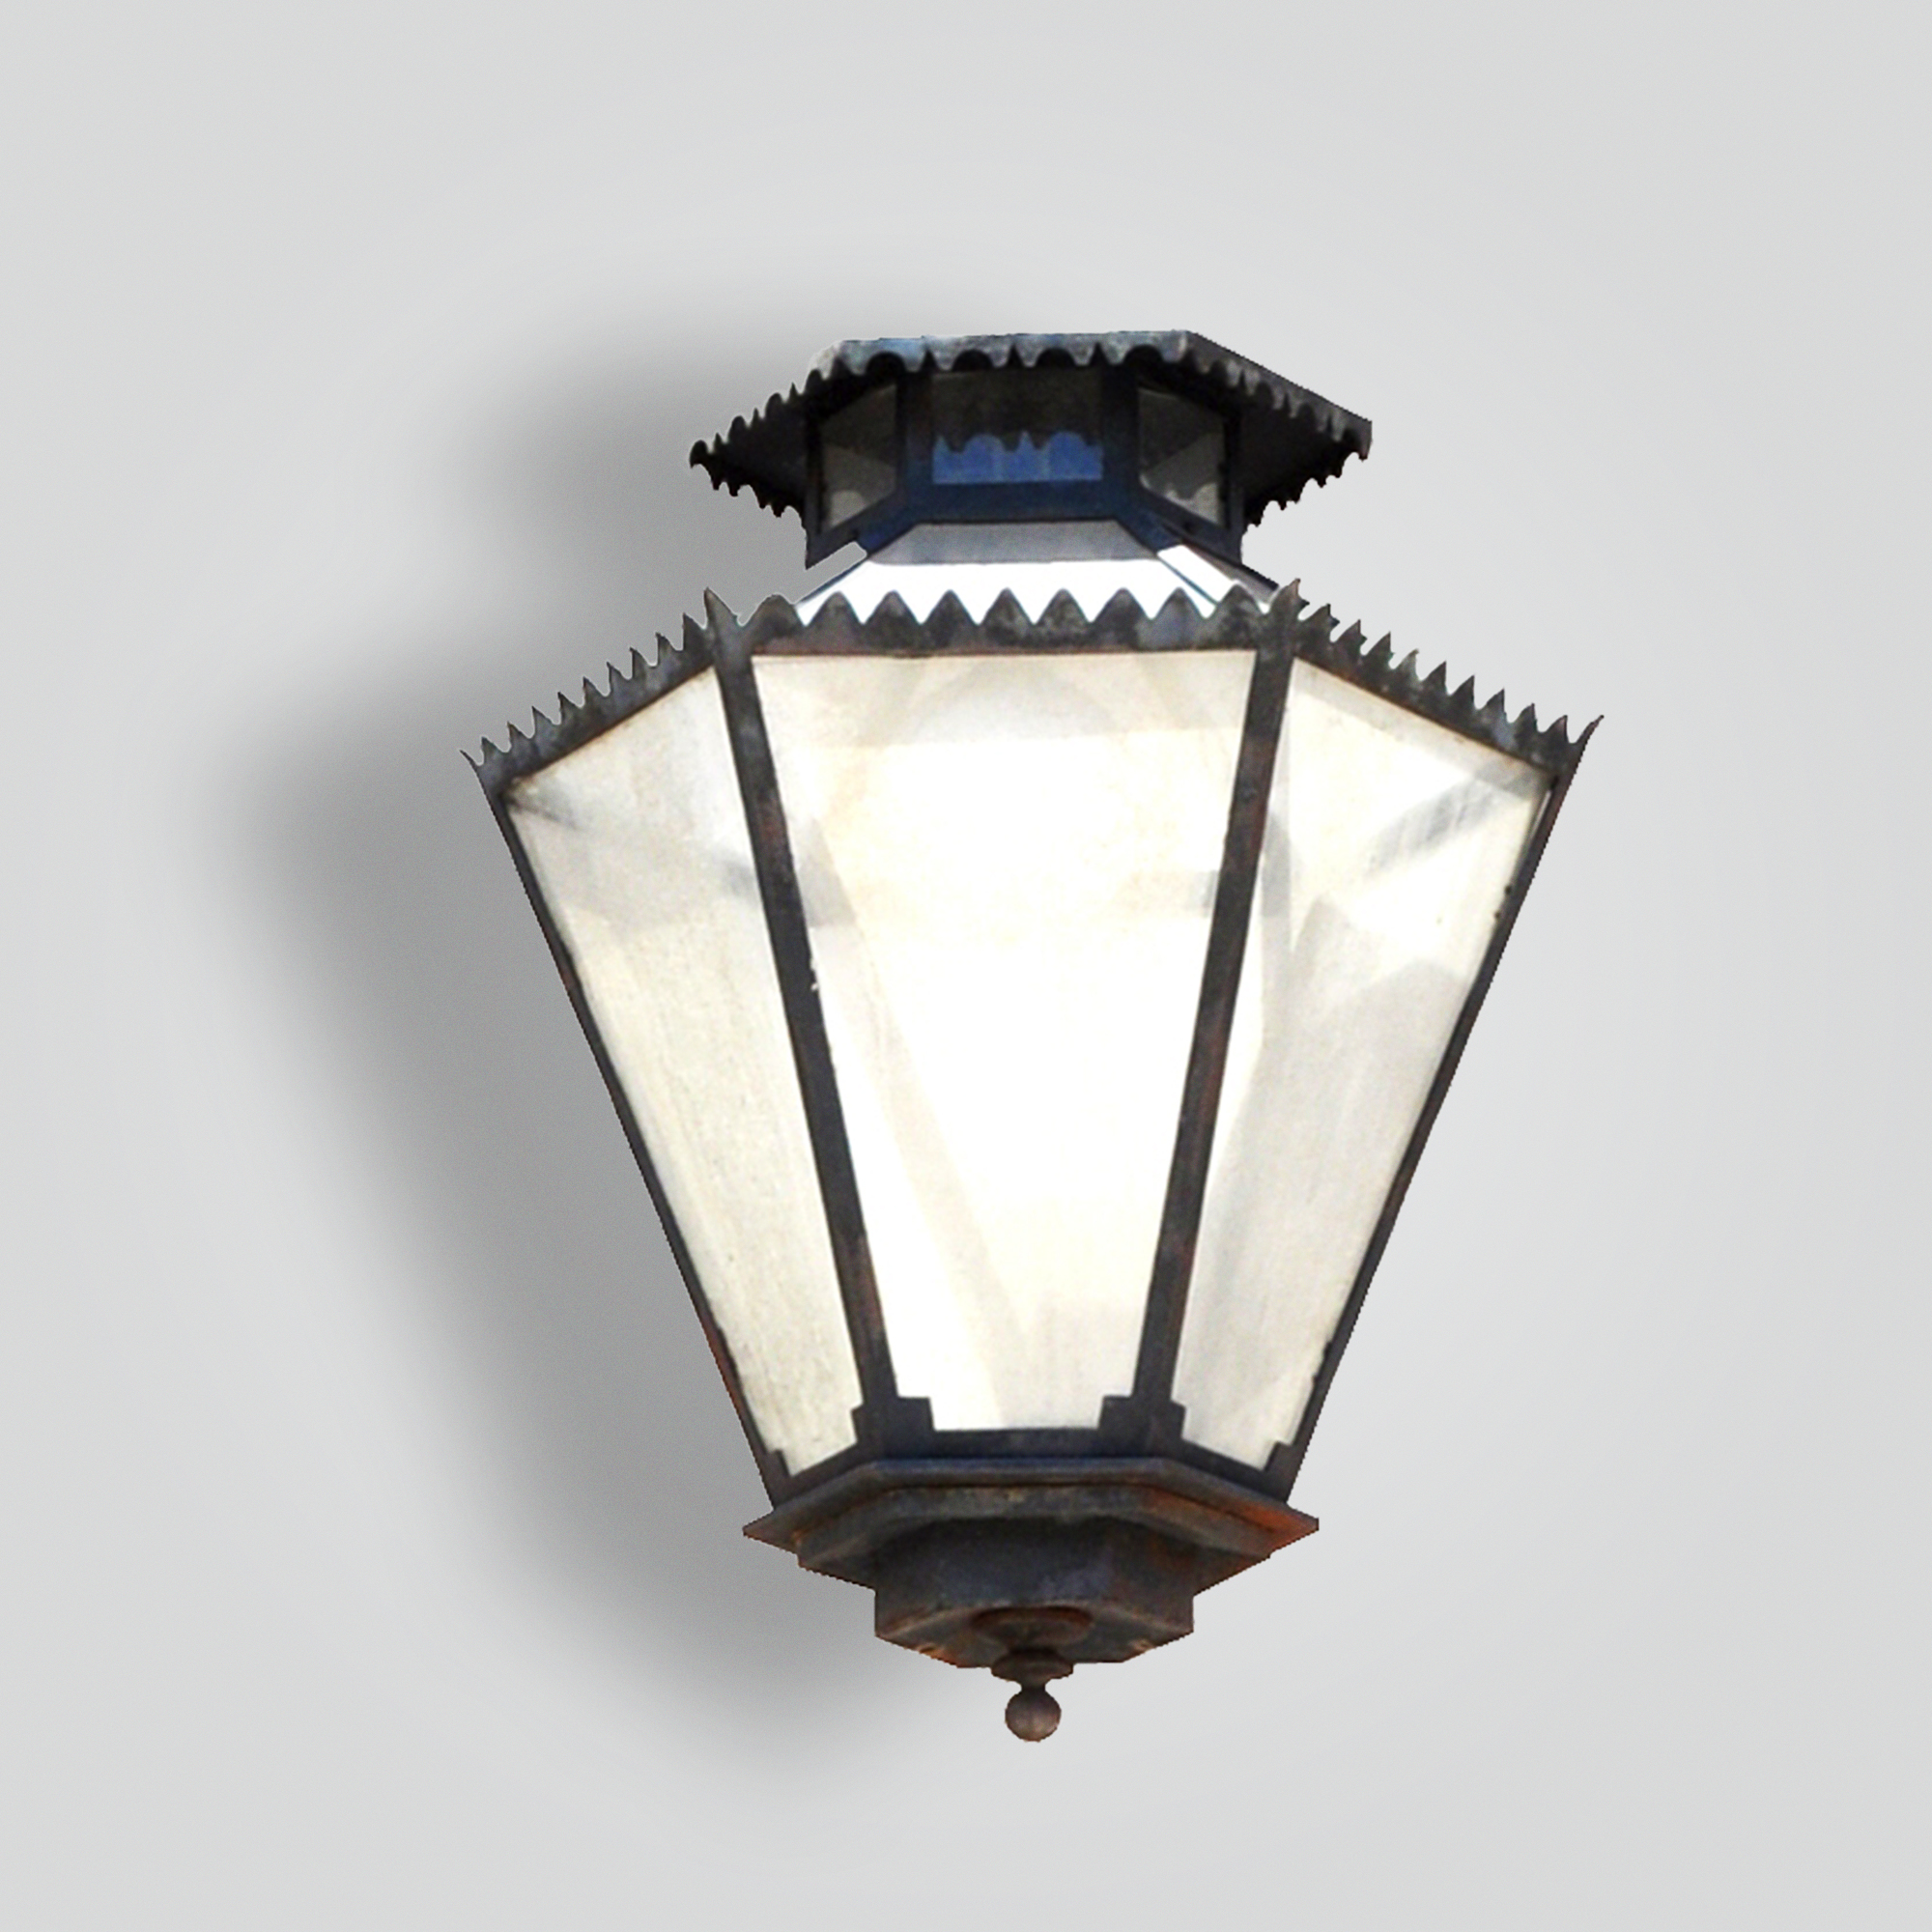 910-mb1-irbr-p-sh 6-sided Lantern – ADG Lighting Collection